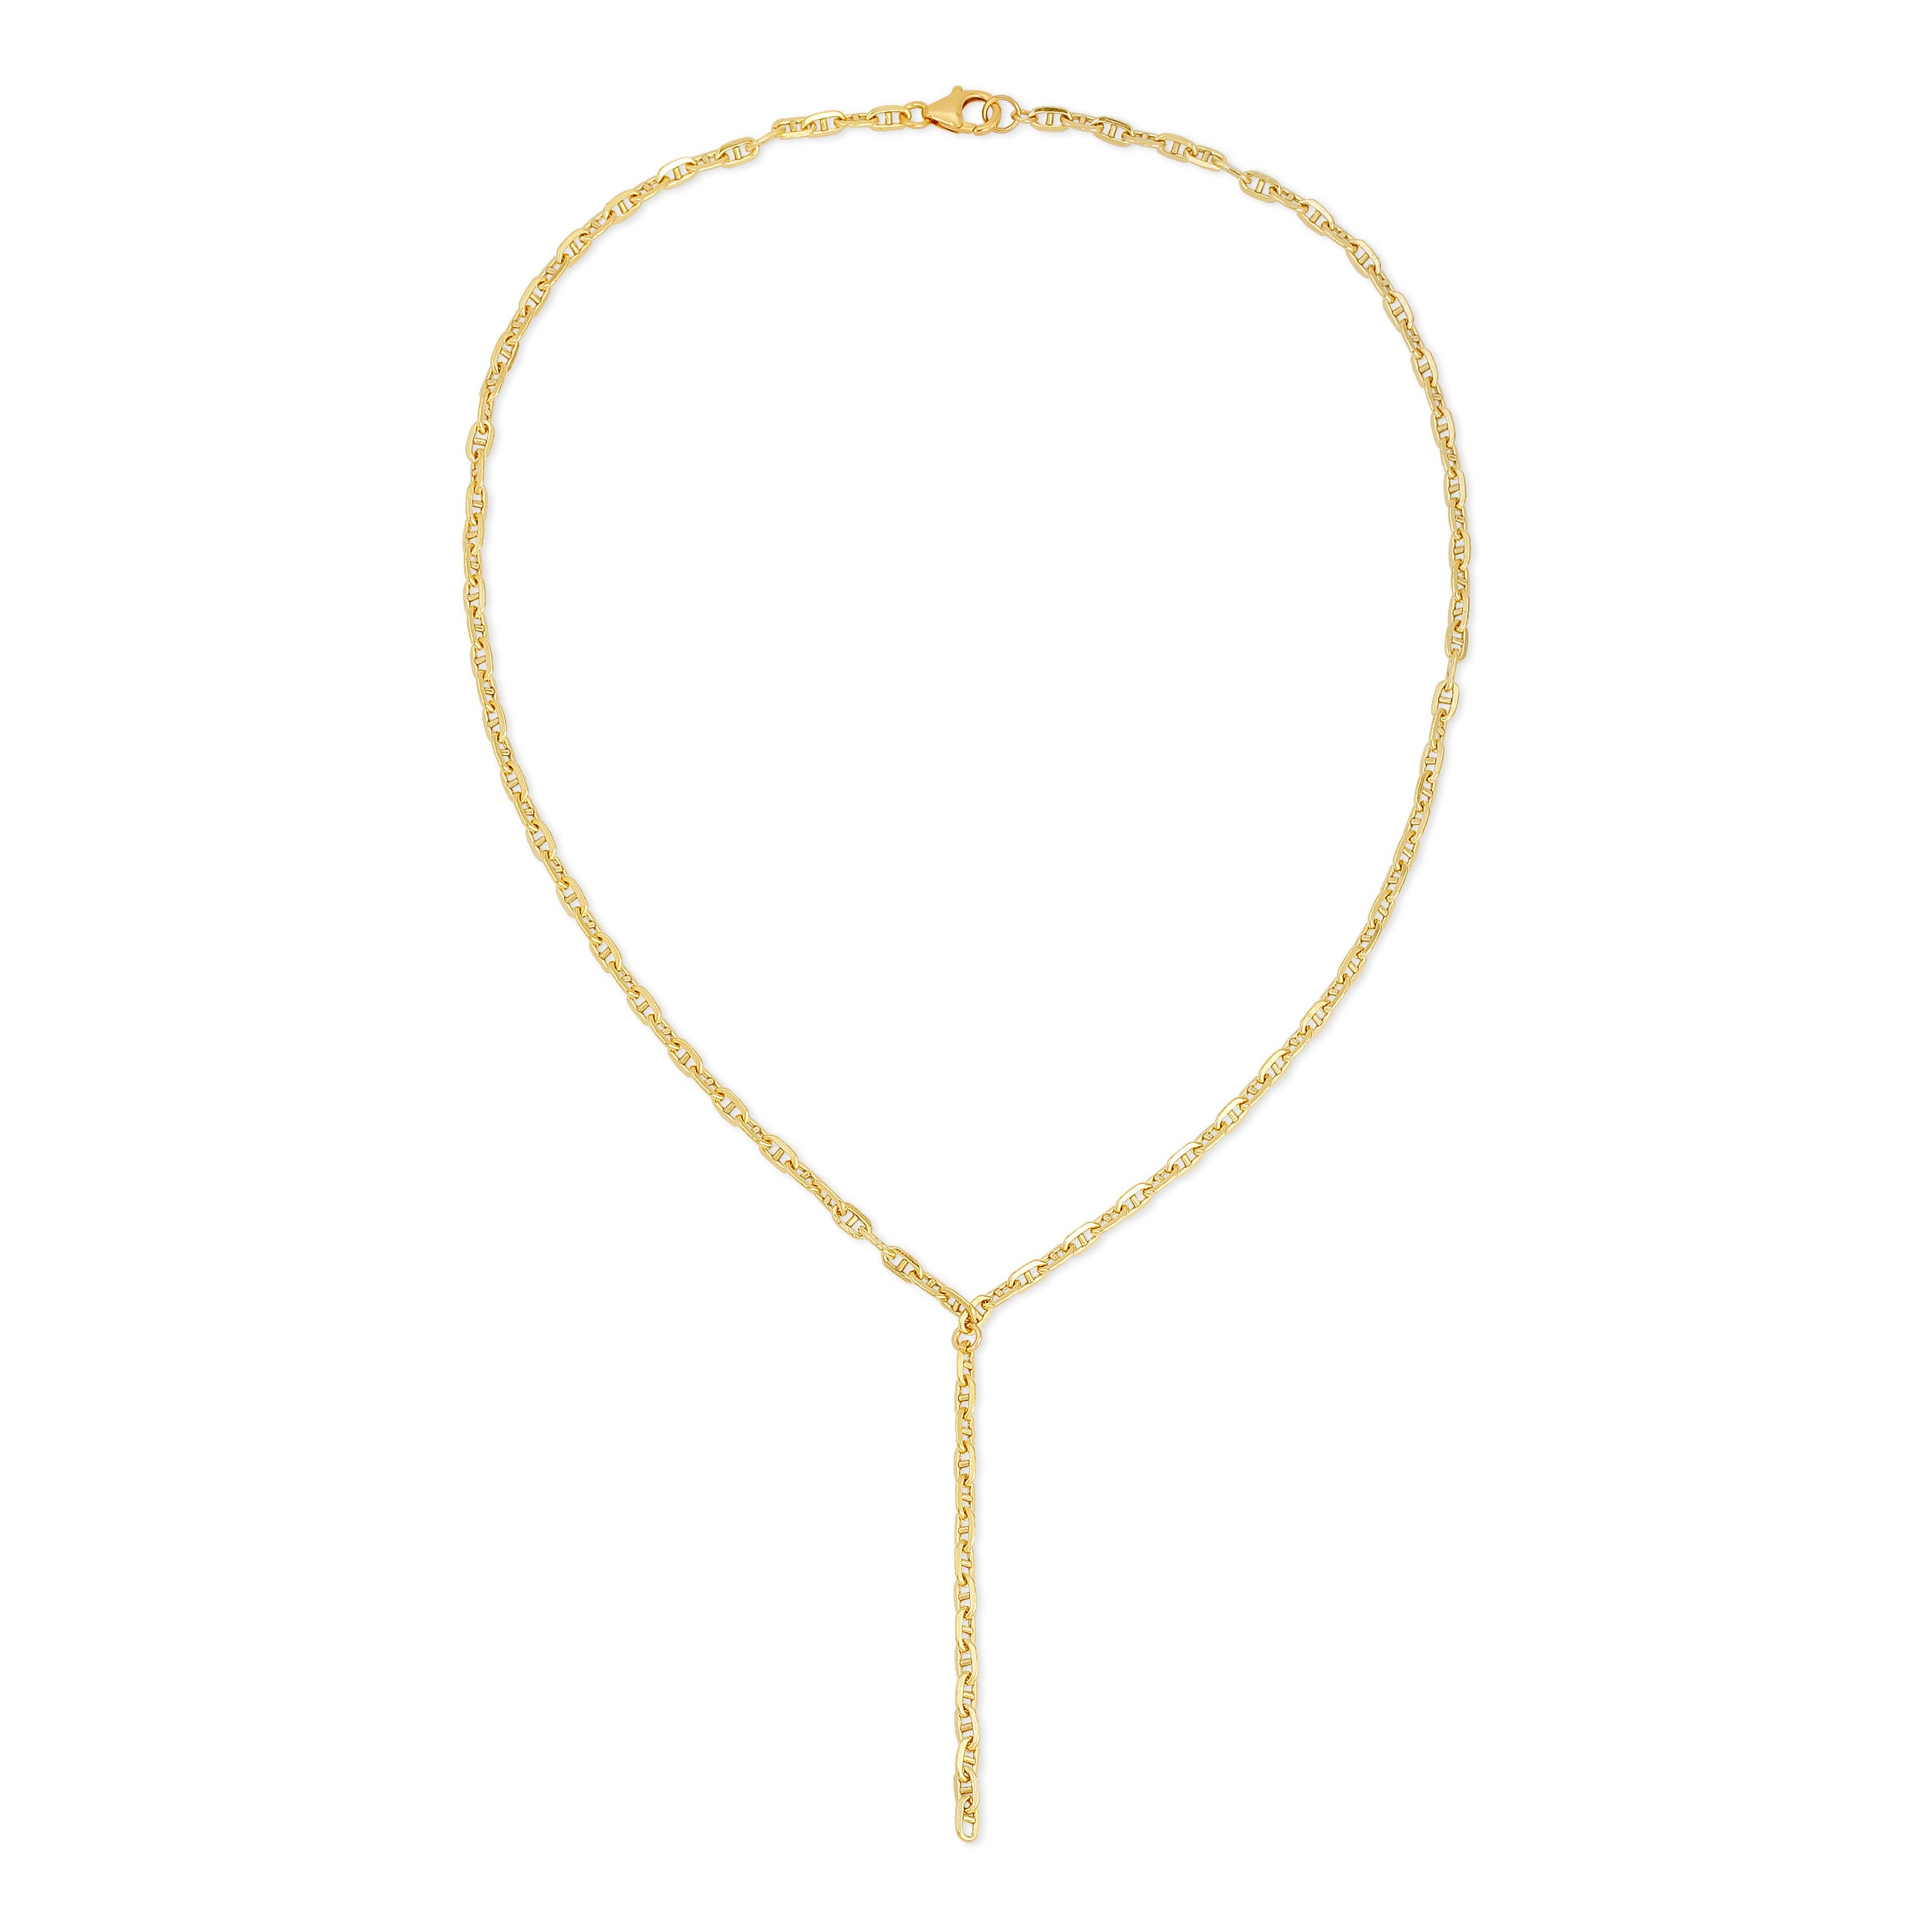 Gold Gucci Chain Necklace